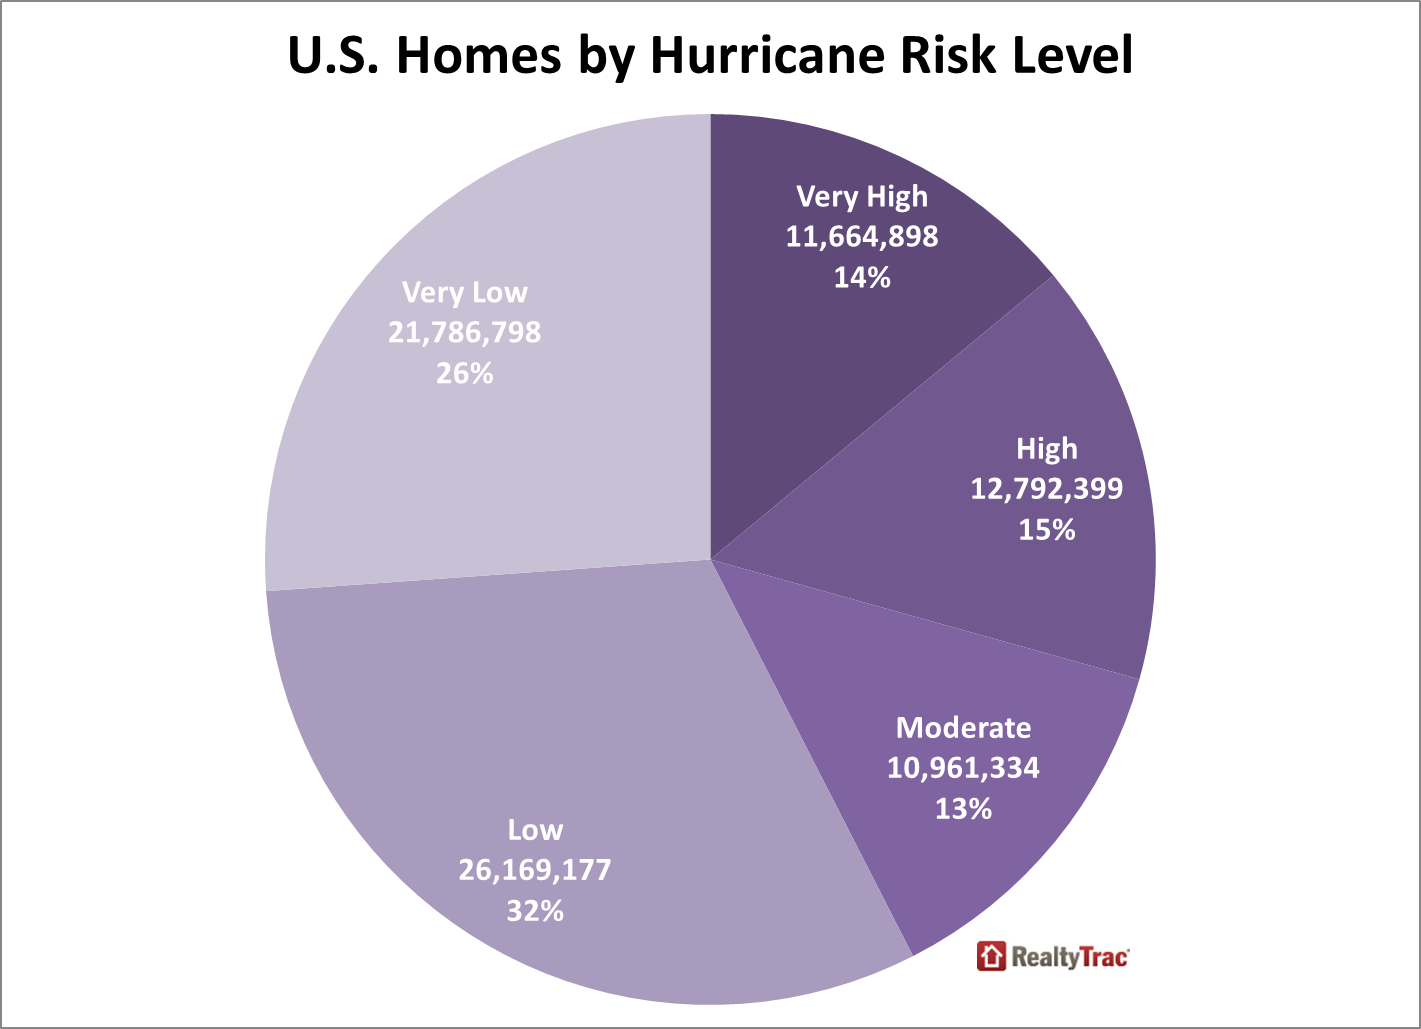 hurricane risk A framework for hurricane risk analysis of monopile founded owts is proposed • hurricane intensity measures are developed from a synthetic hurricane catalog.